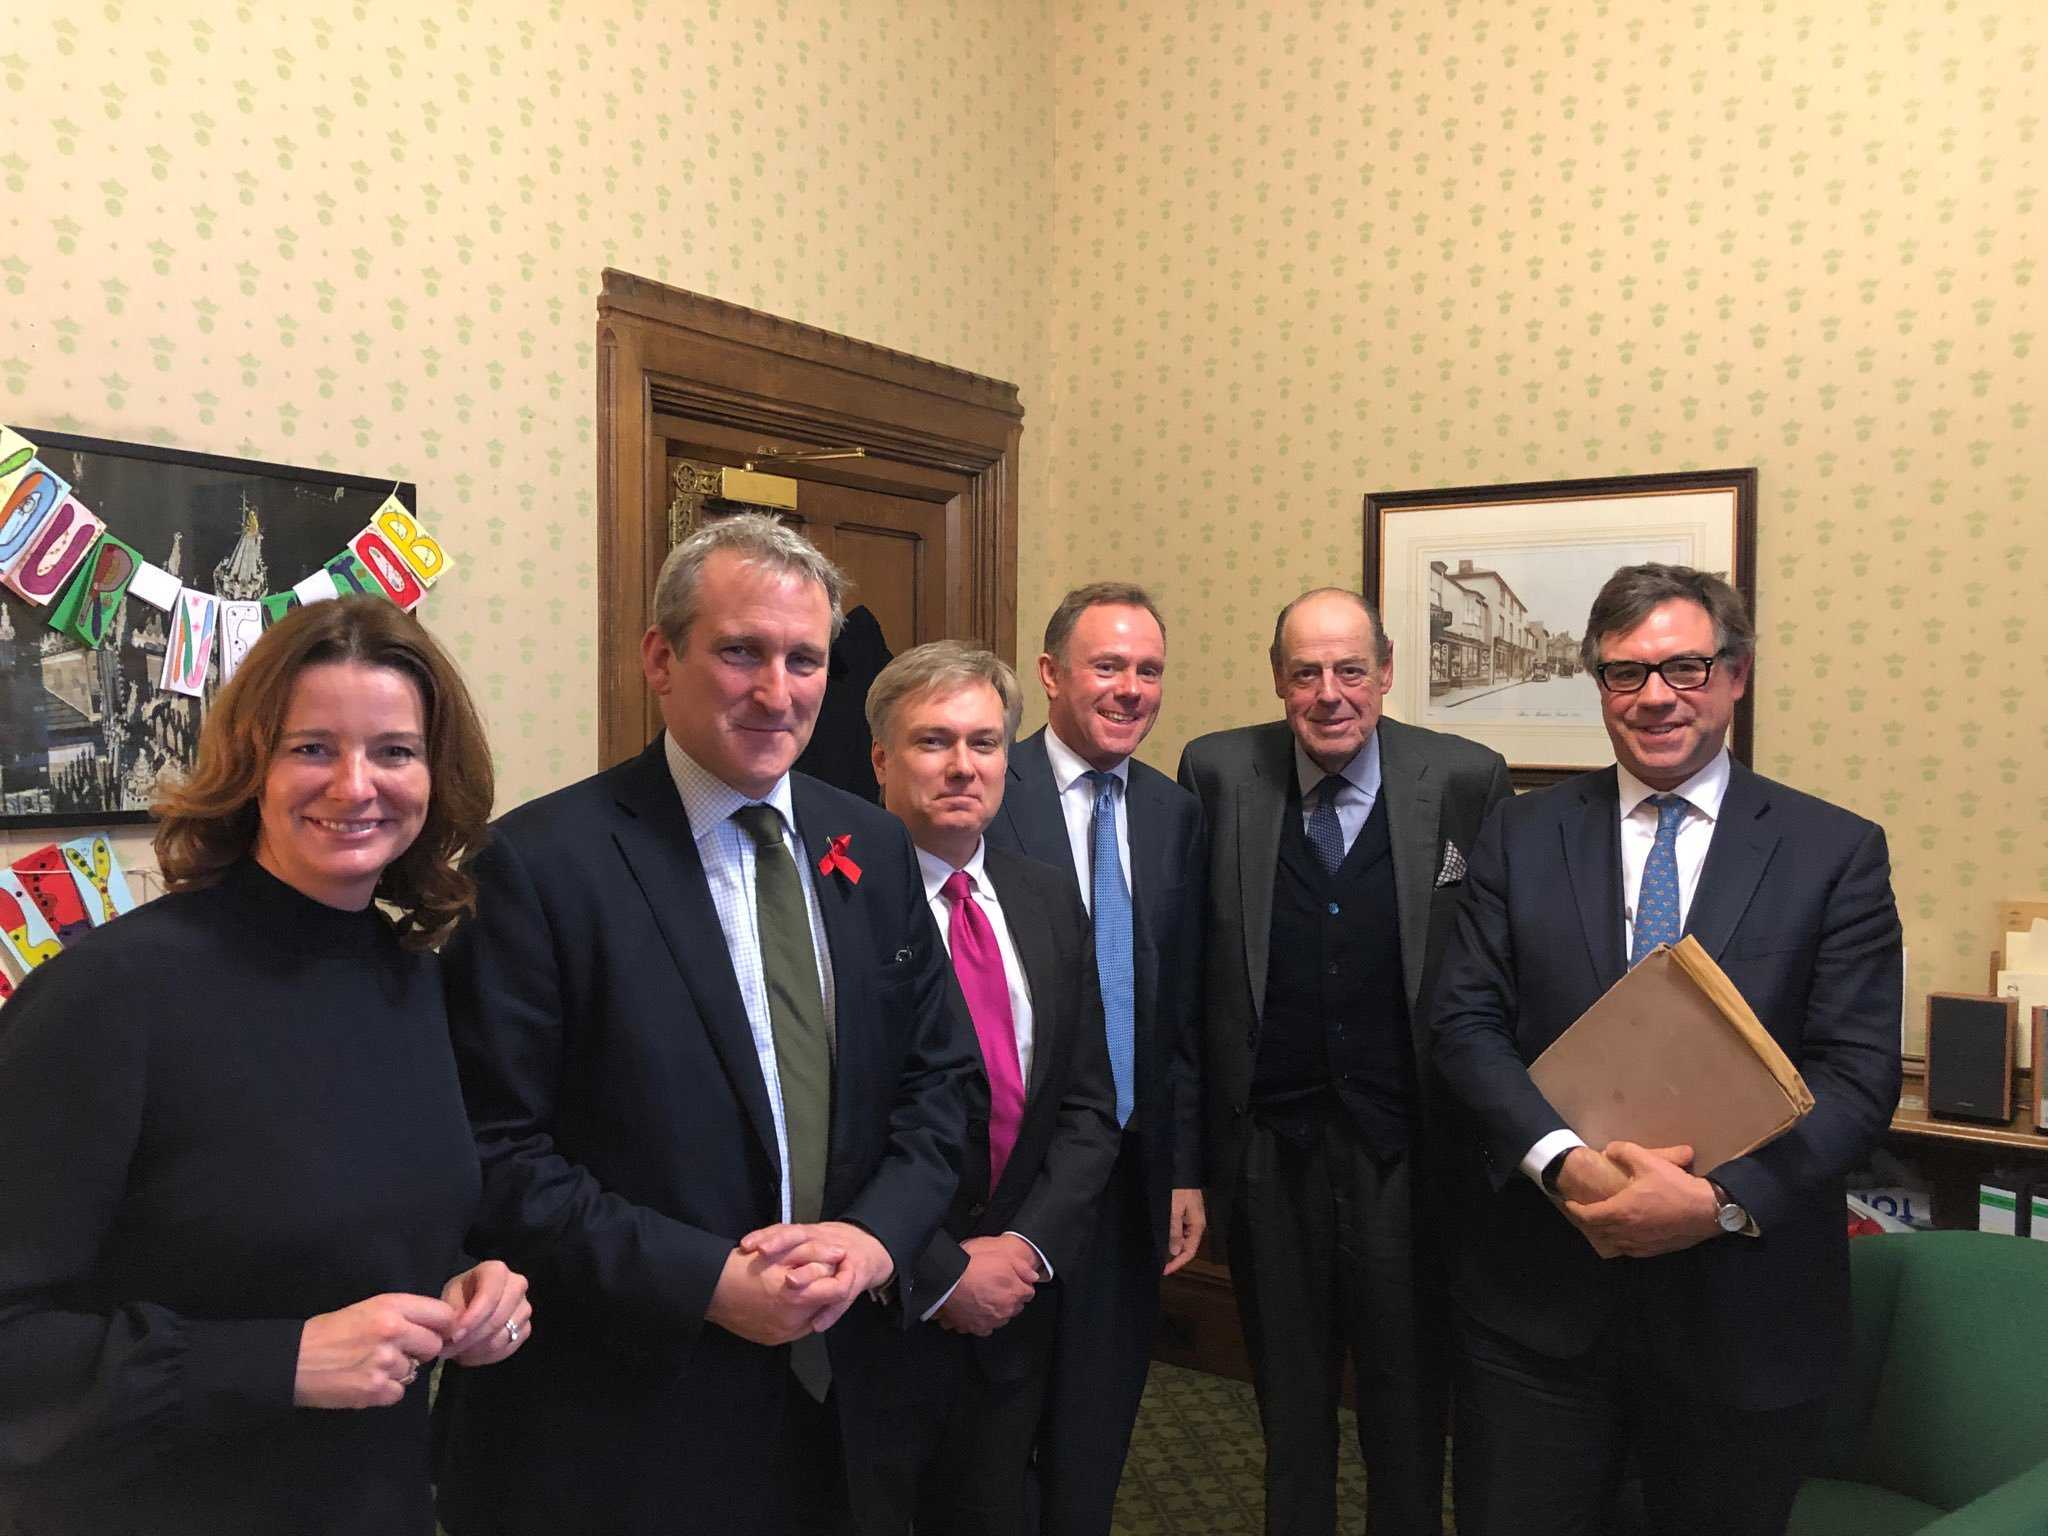 Nick and his fellow West Sussex MPs meet the Education Secretary, Damian Hinds, to lobby for better funding locally - 29 November 2018.